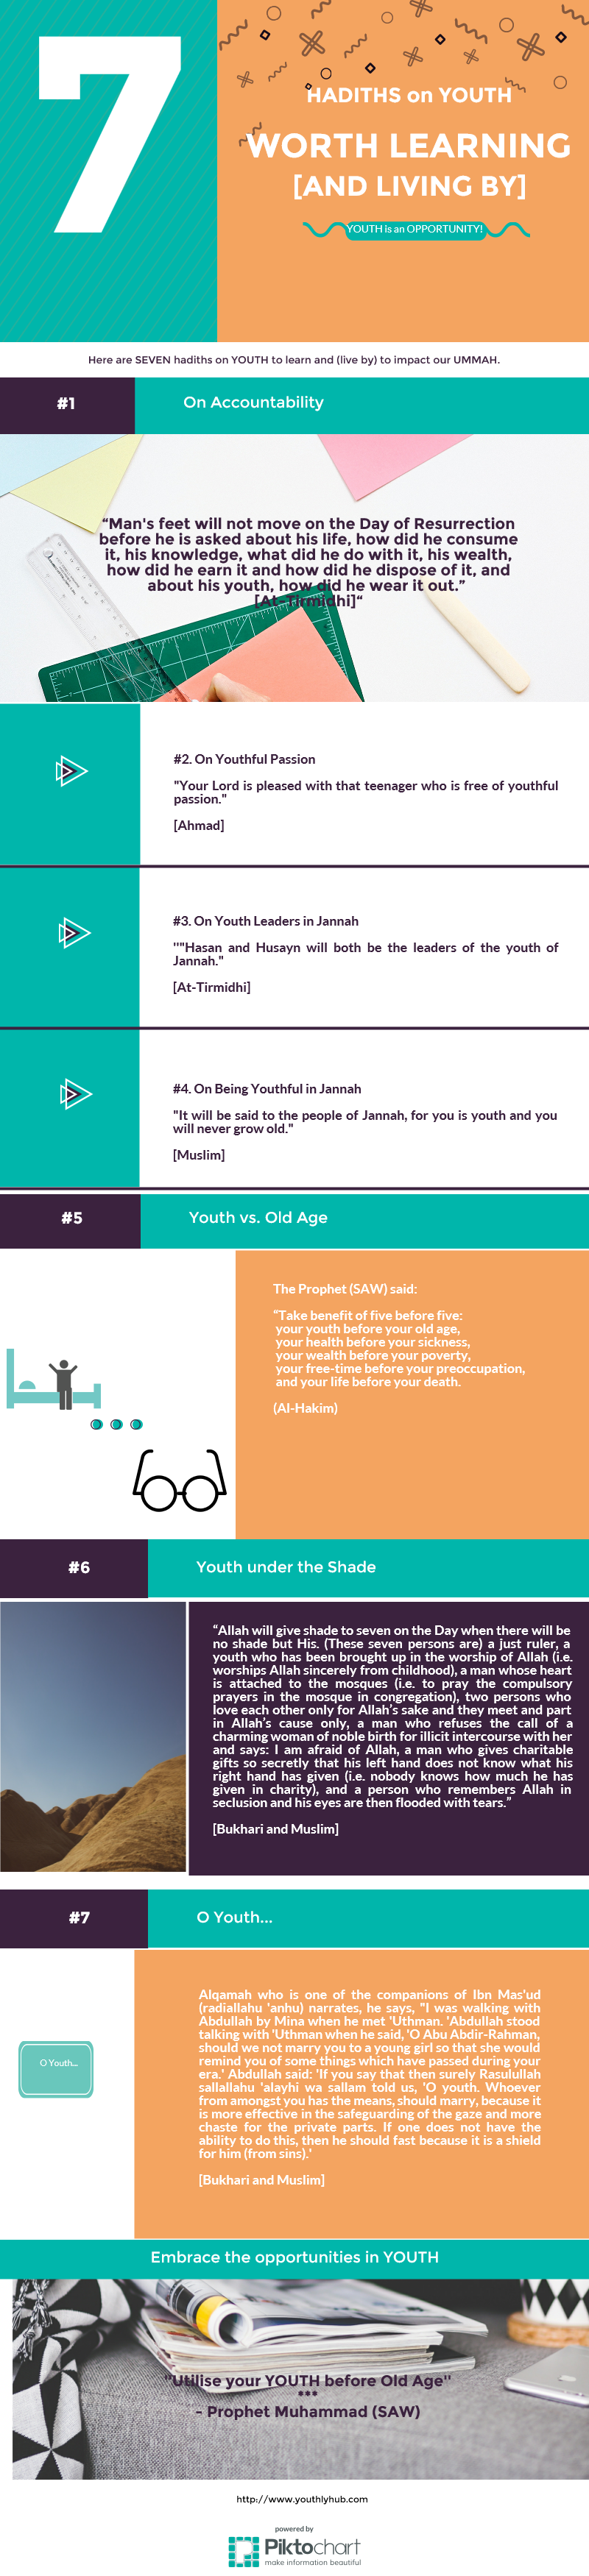 7-hadiths-on-youth-infograpgic-YouthlyHub.com